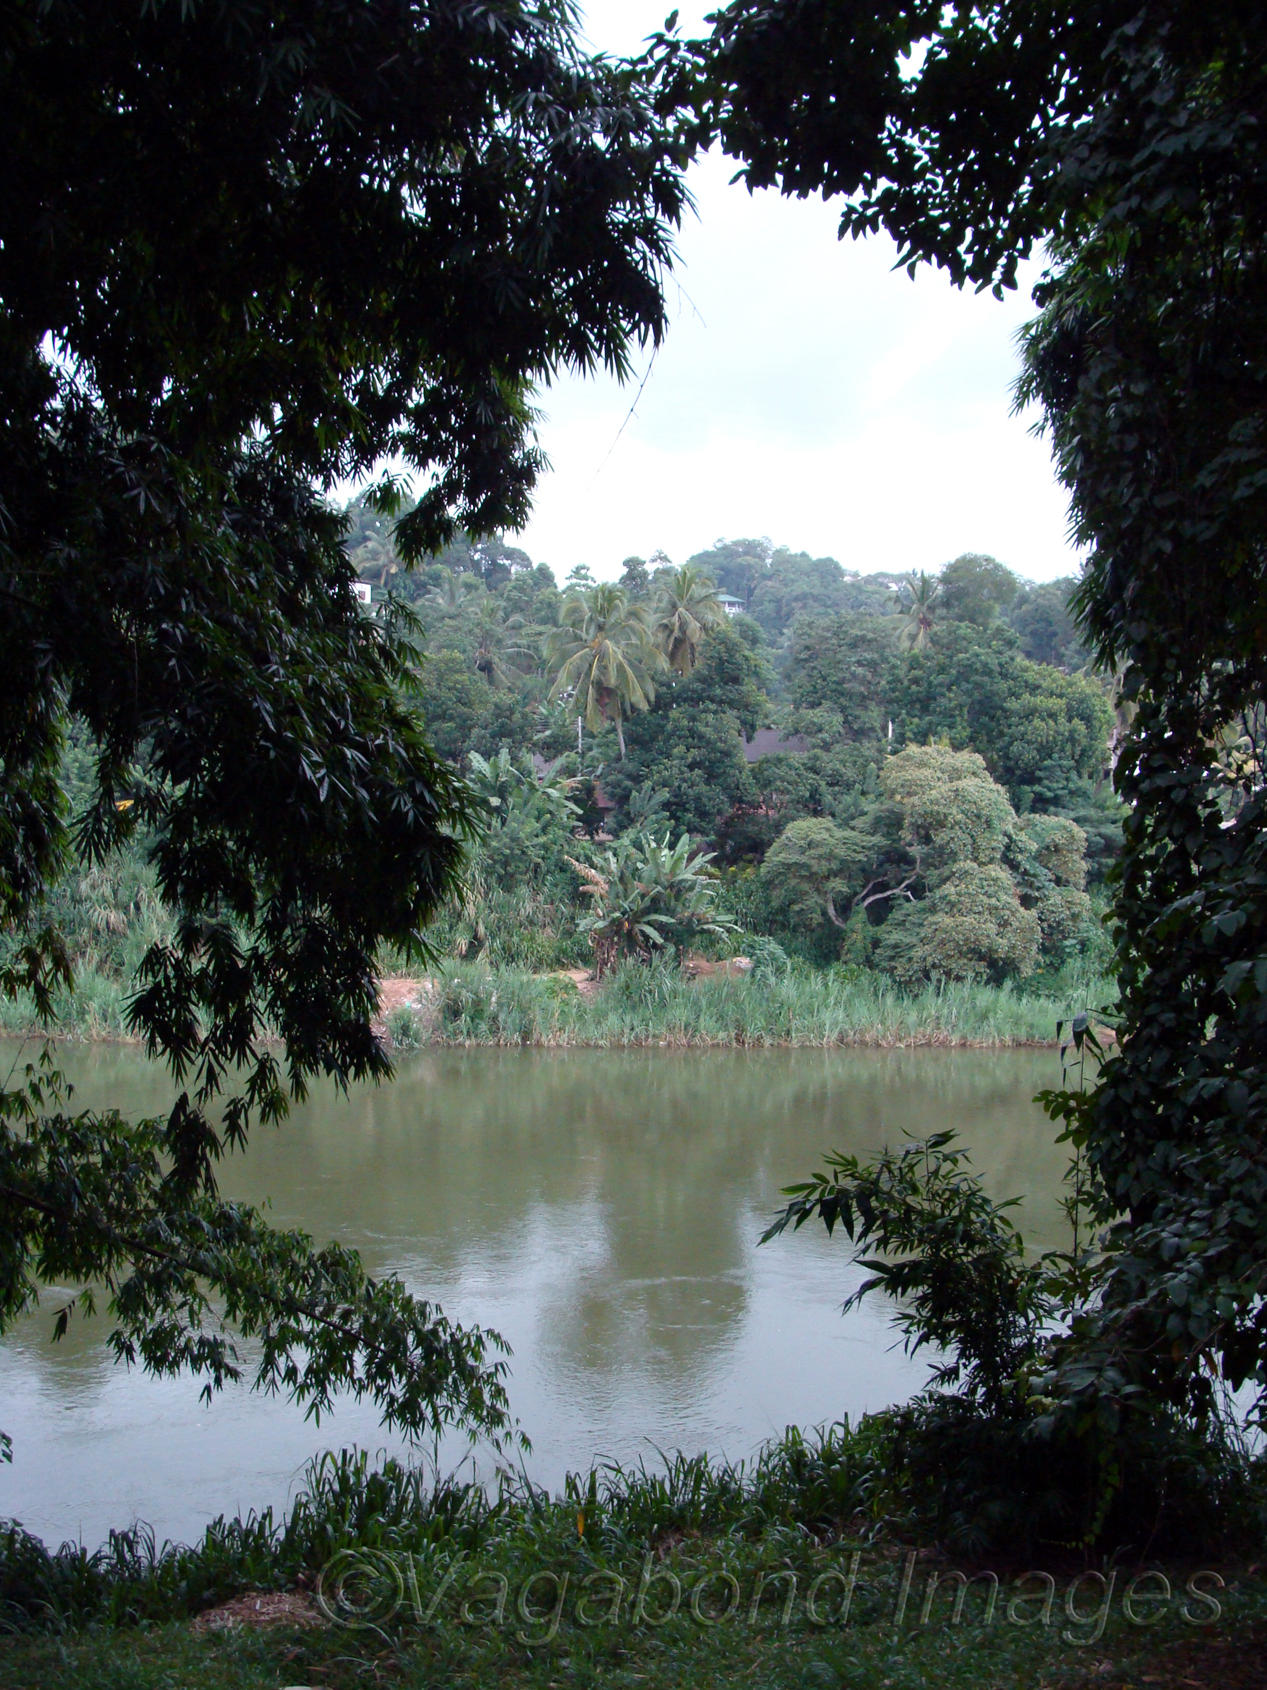 Water bodies add up to the setting